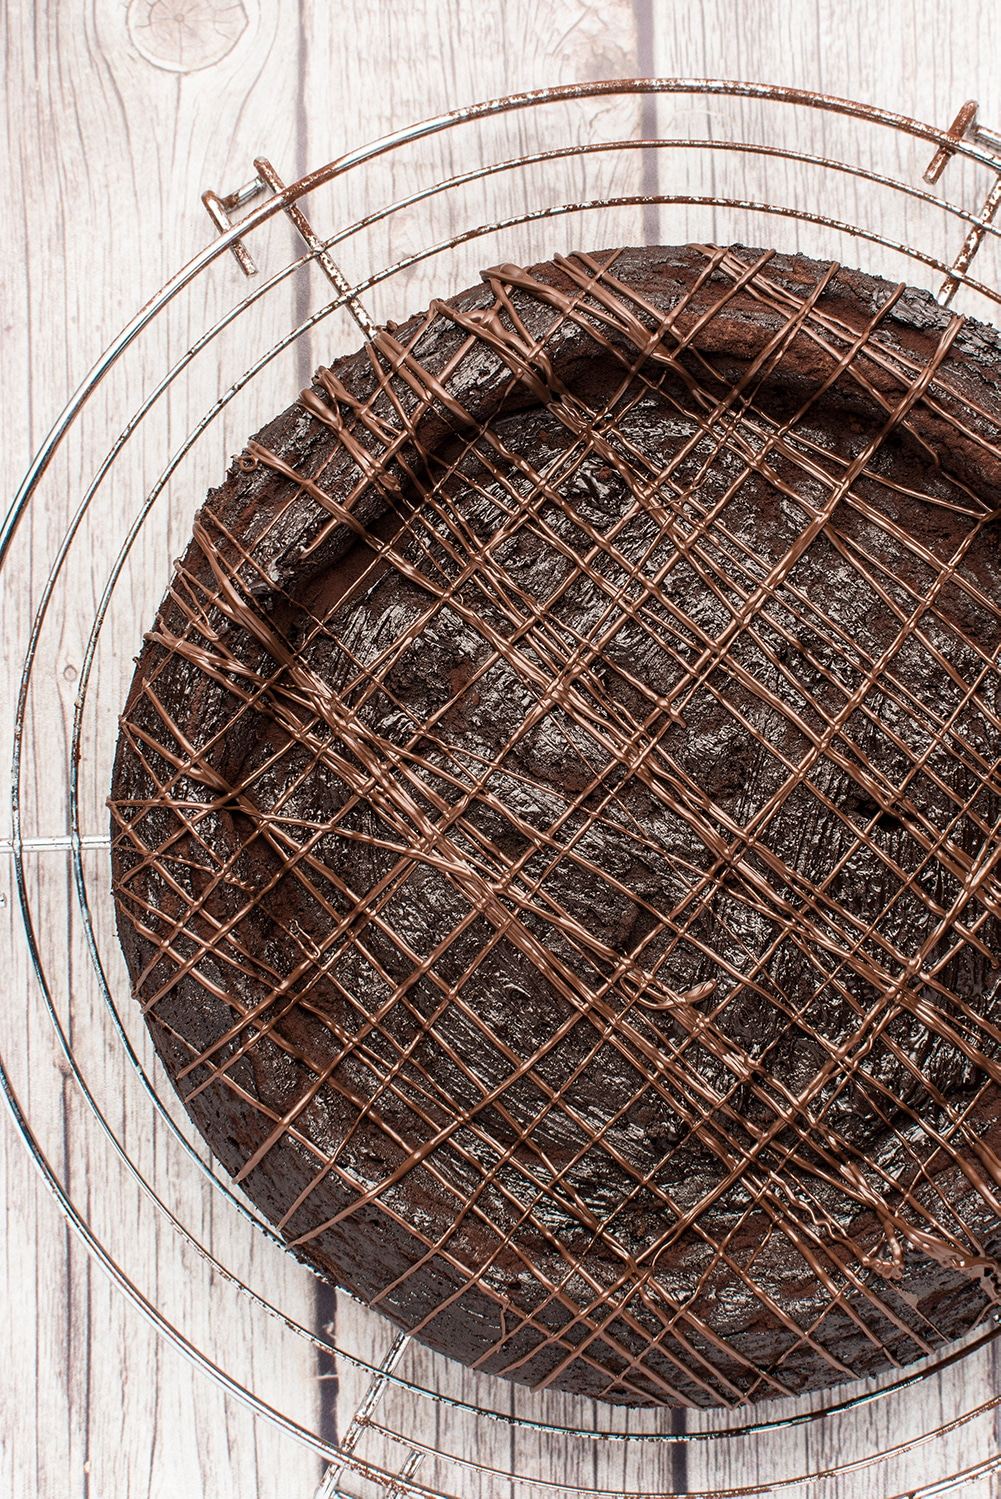 dark chocolate torte with stripes of melted chocolate resting on a round metal cooling rack